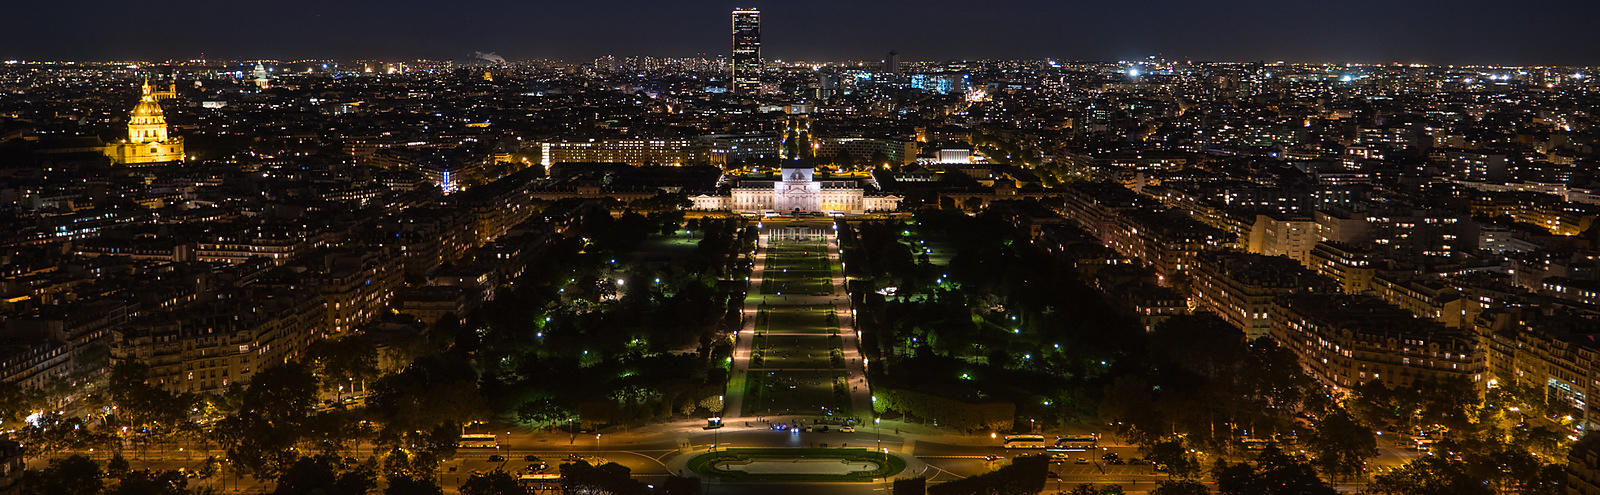 Aerial View of Paris at Night